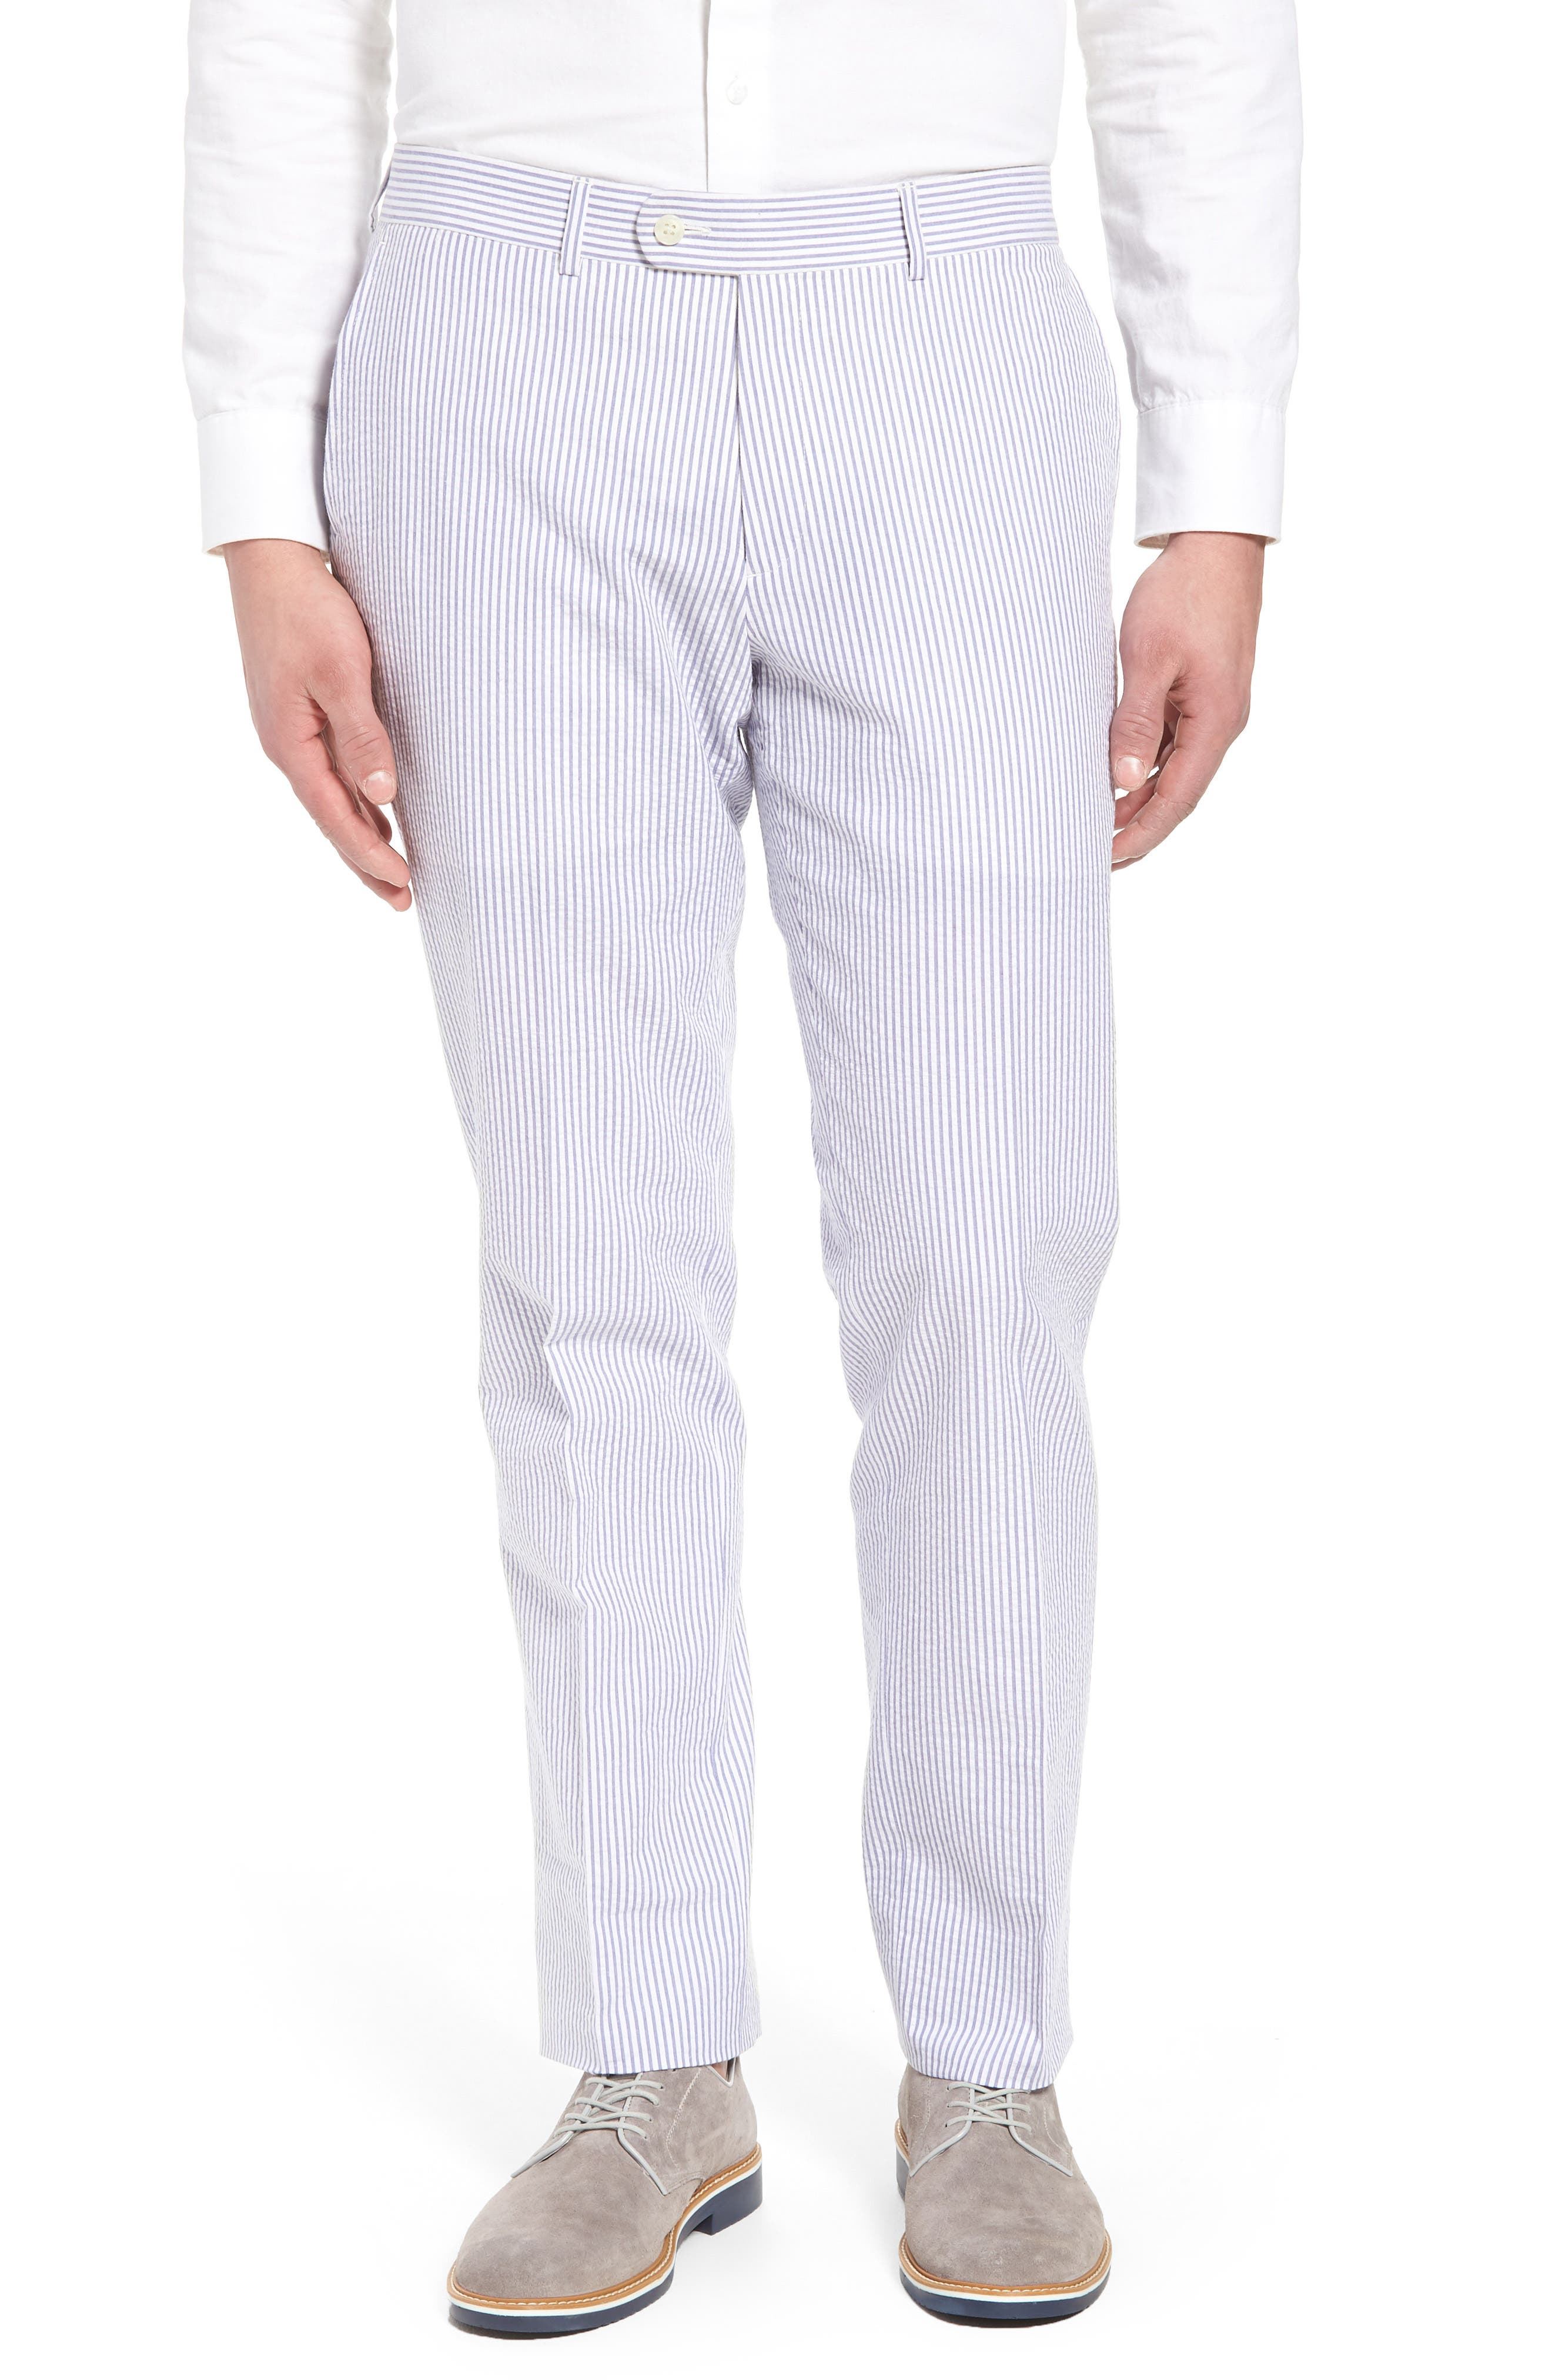 Andrew AIM Flat Front Seersucker Trousers,                             Main thumbnail 1, color,                             BLUE AND WHITE